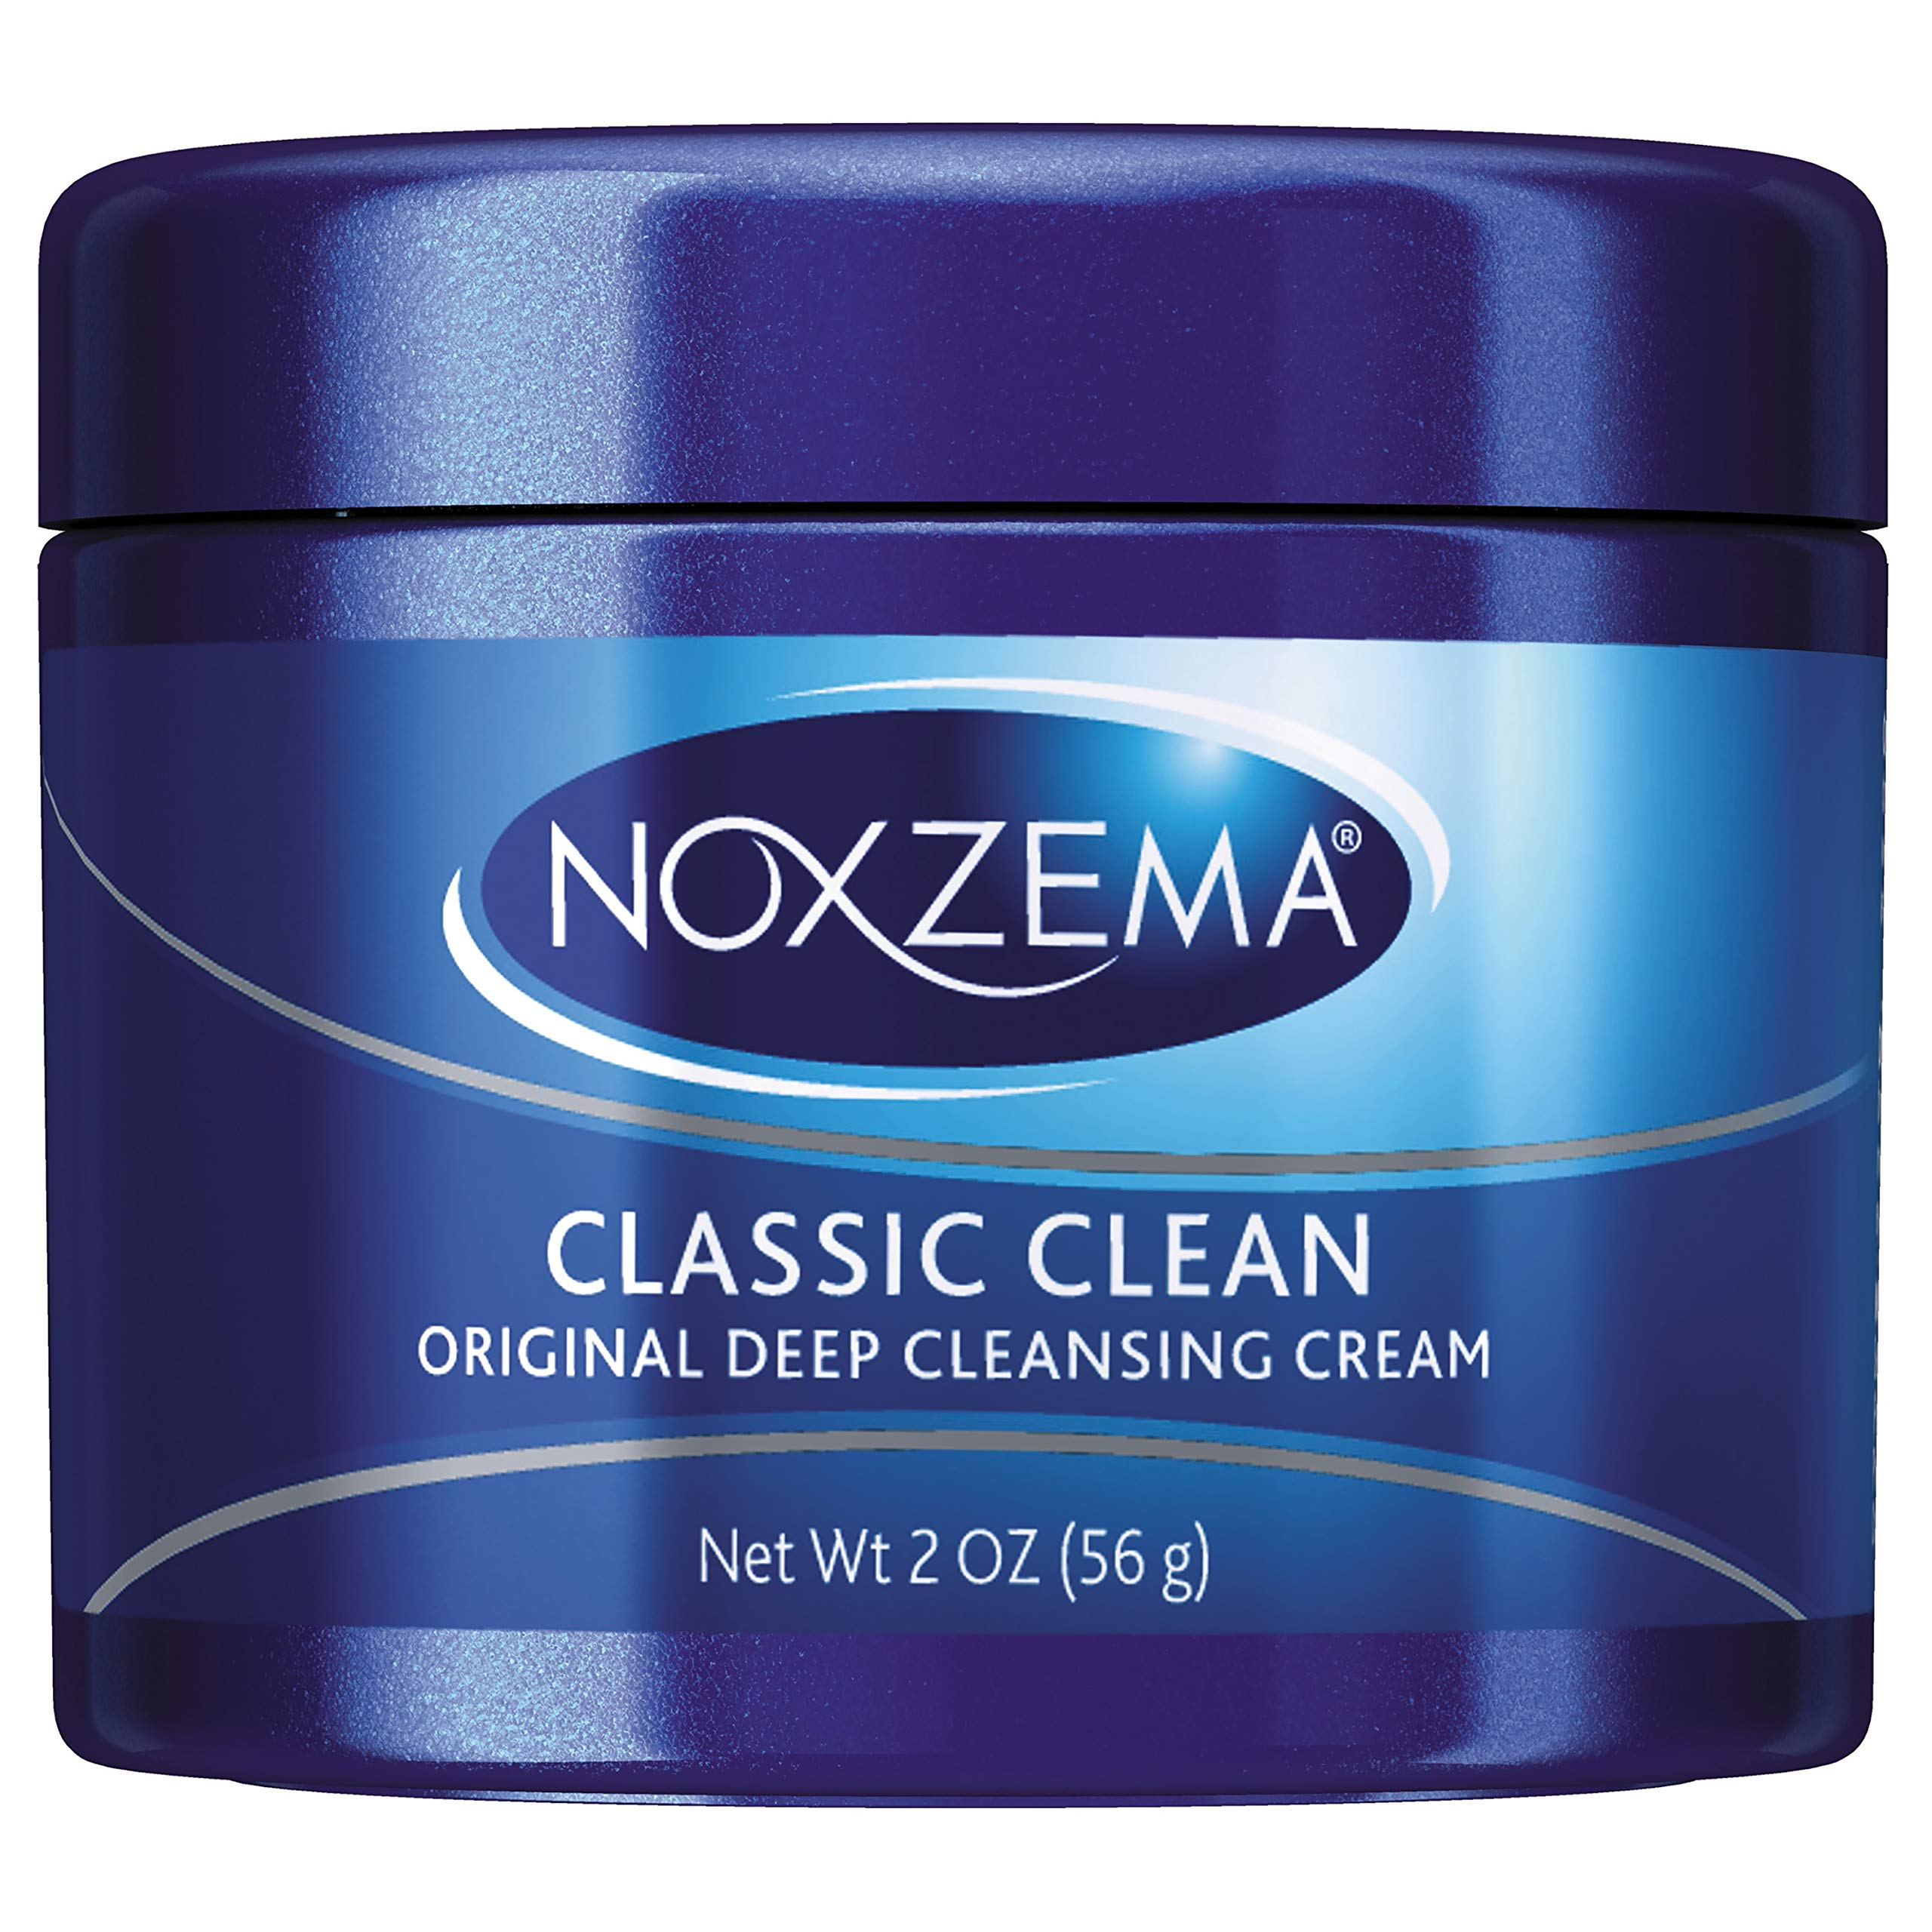 Noxzema Classic Clean Cleanser, Original Deep Cleansing, 2 oz